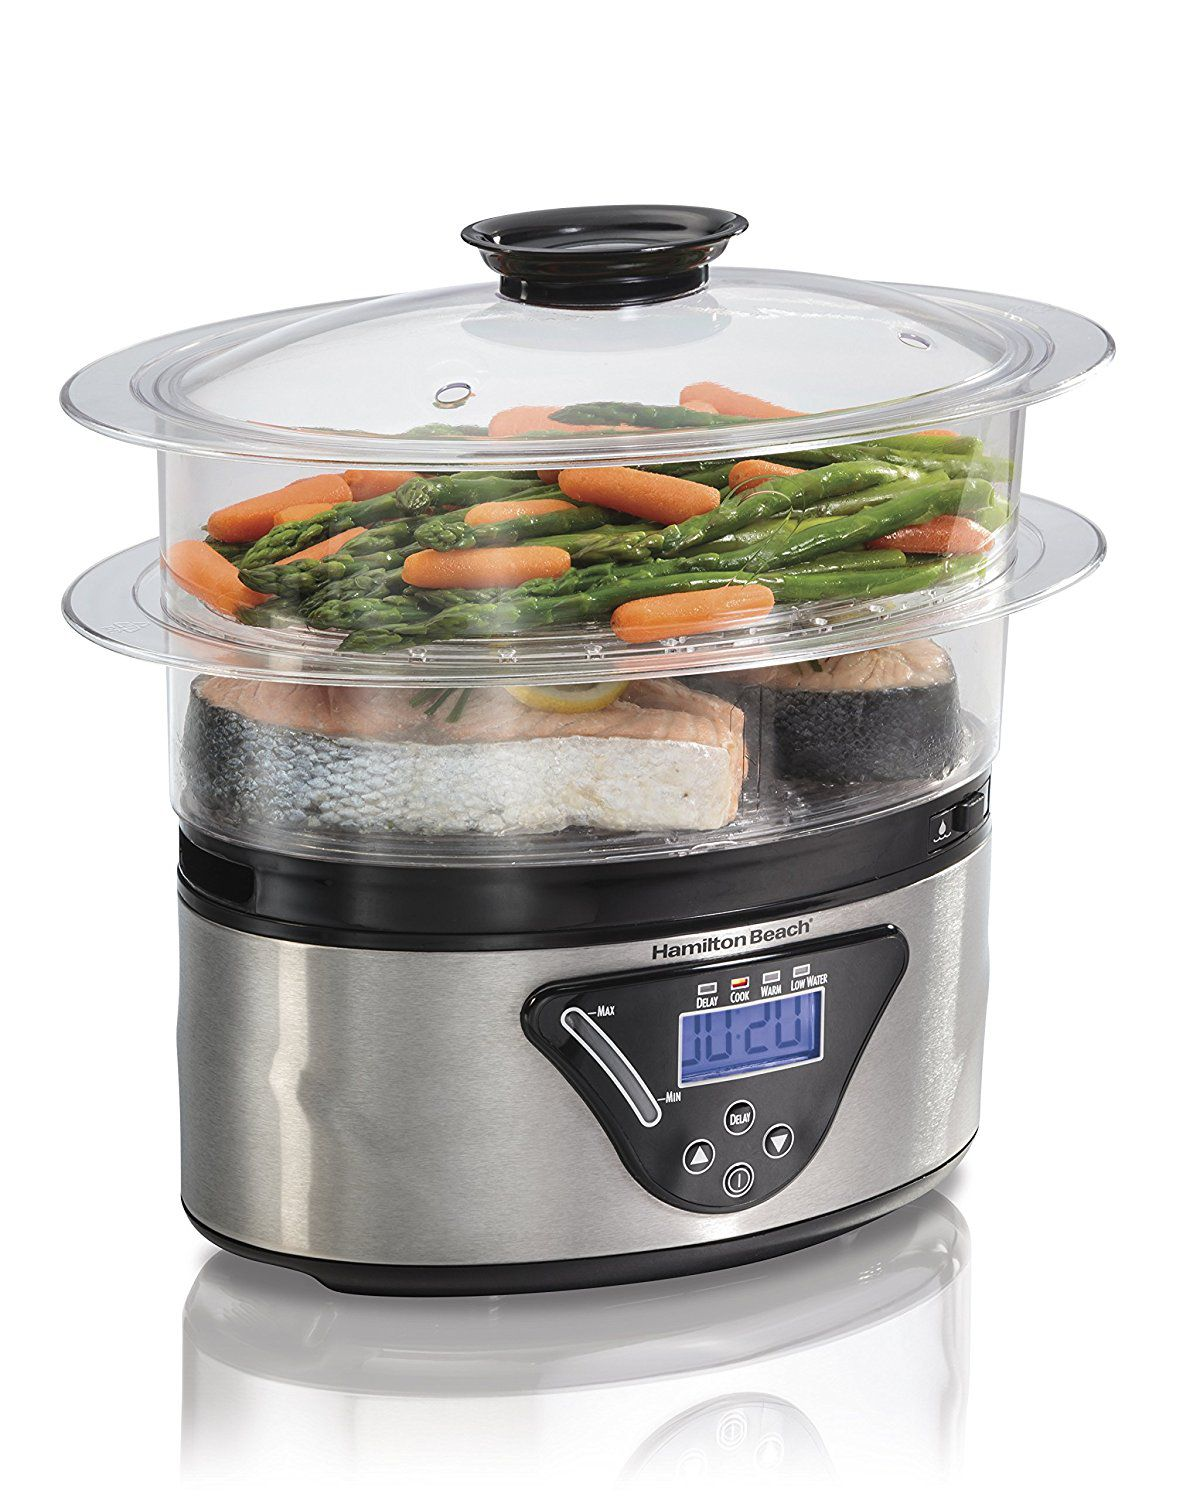 Kitchen Living Food Steamer: The 7 Best Food Steamers To Buy In 2018